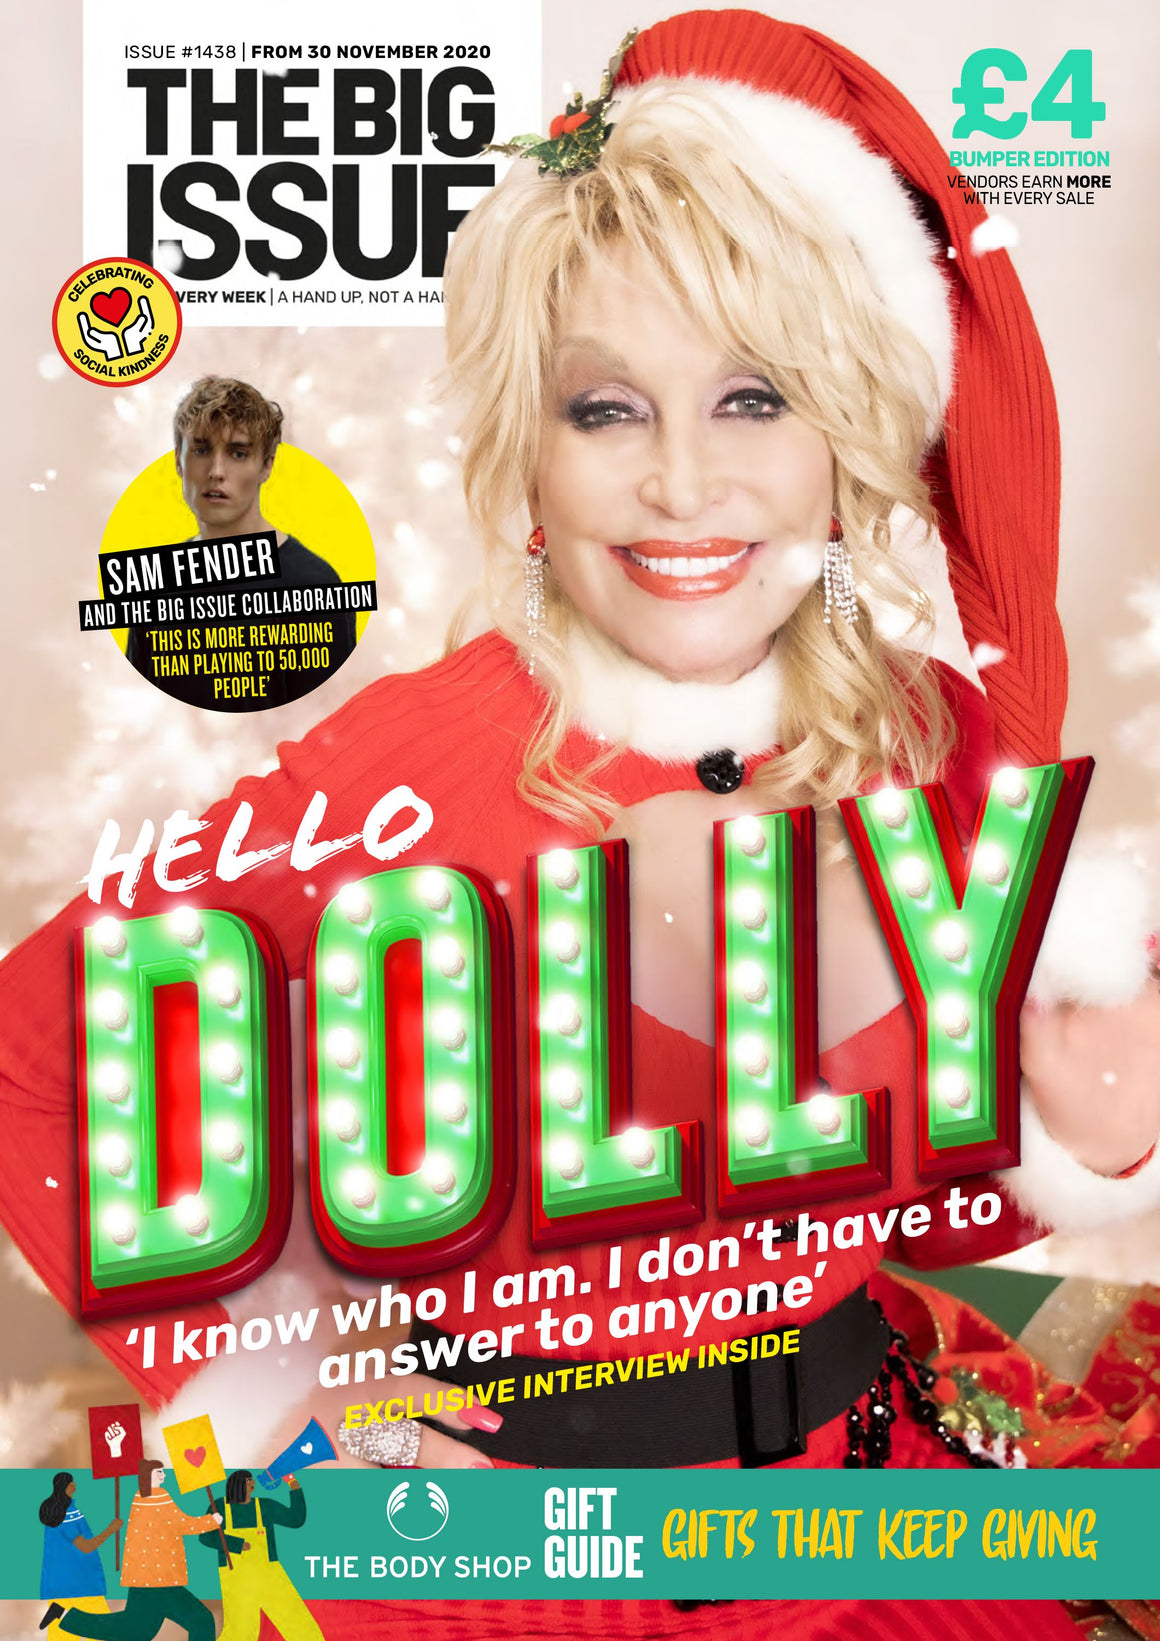 BIG ISSUE Magazine 1438 - DOLLY PARTON